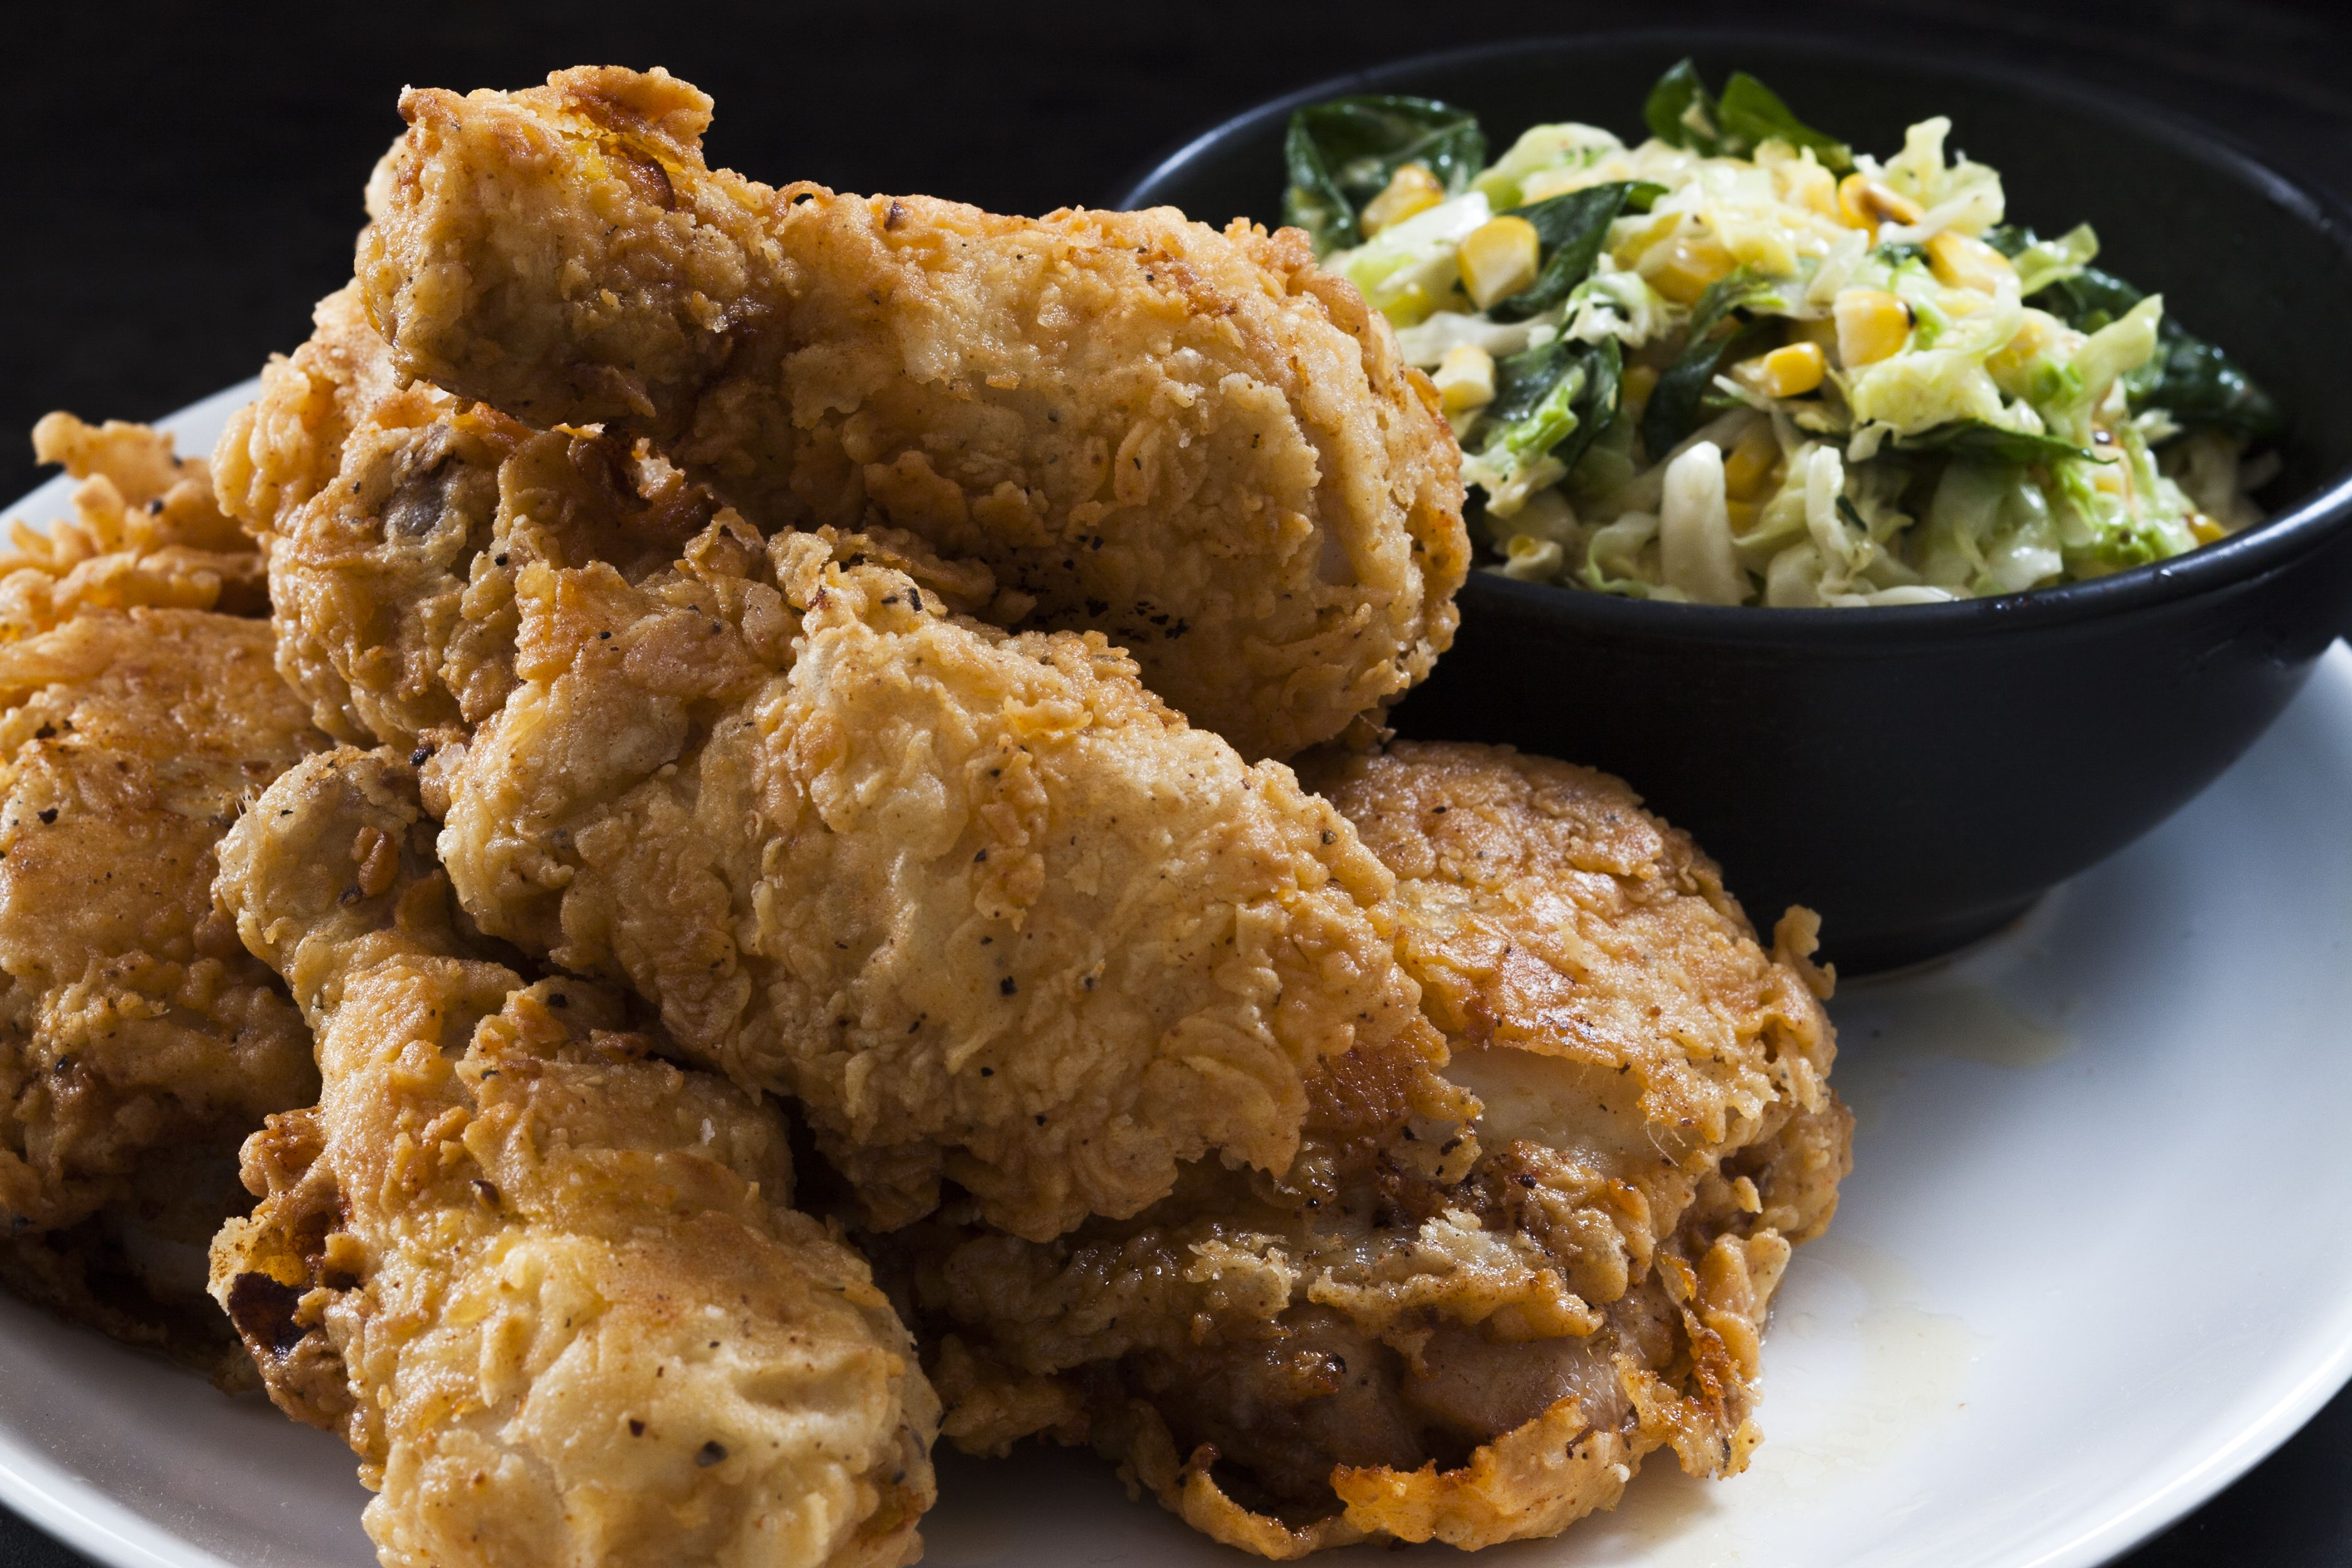 Classic Southern Pan-Fried Chicken Recipe by Chef Alexander Small